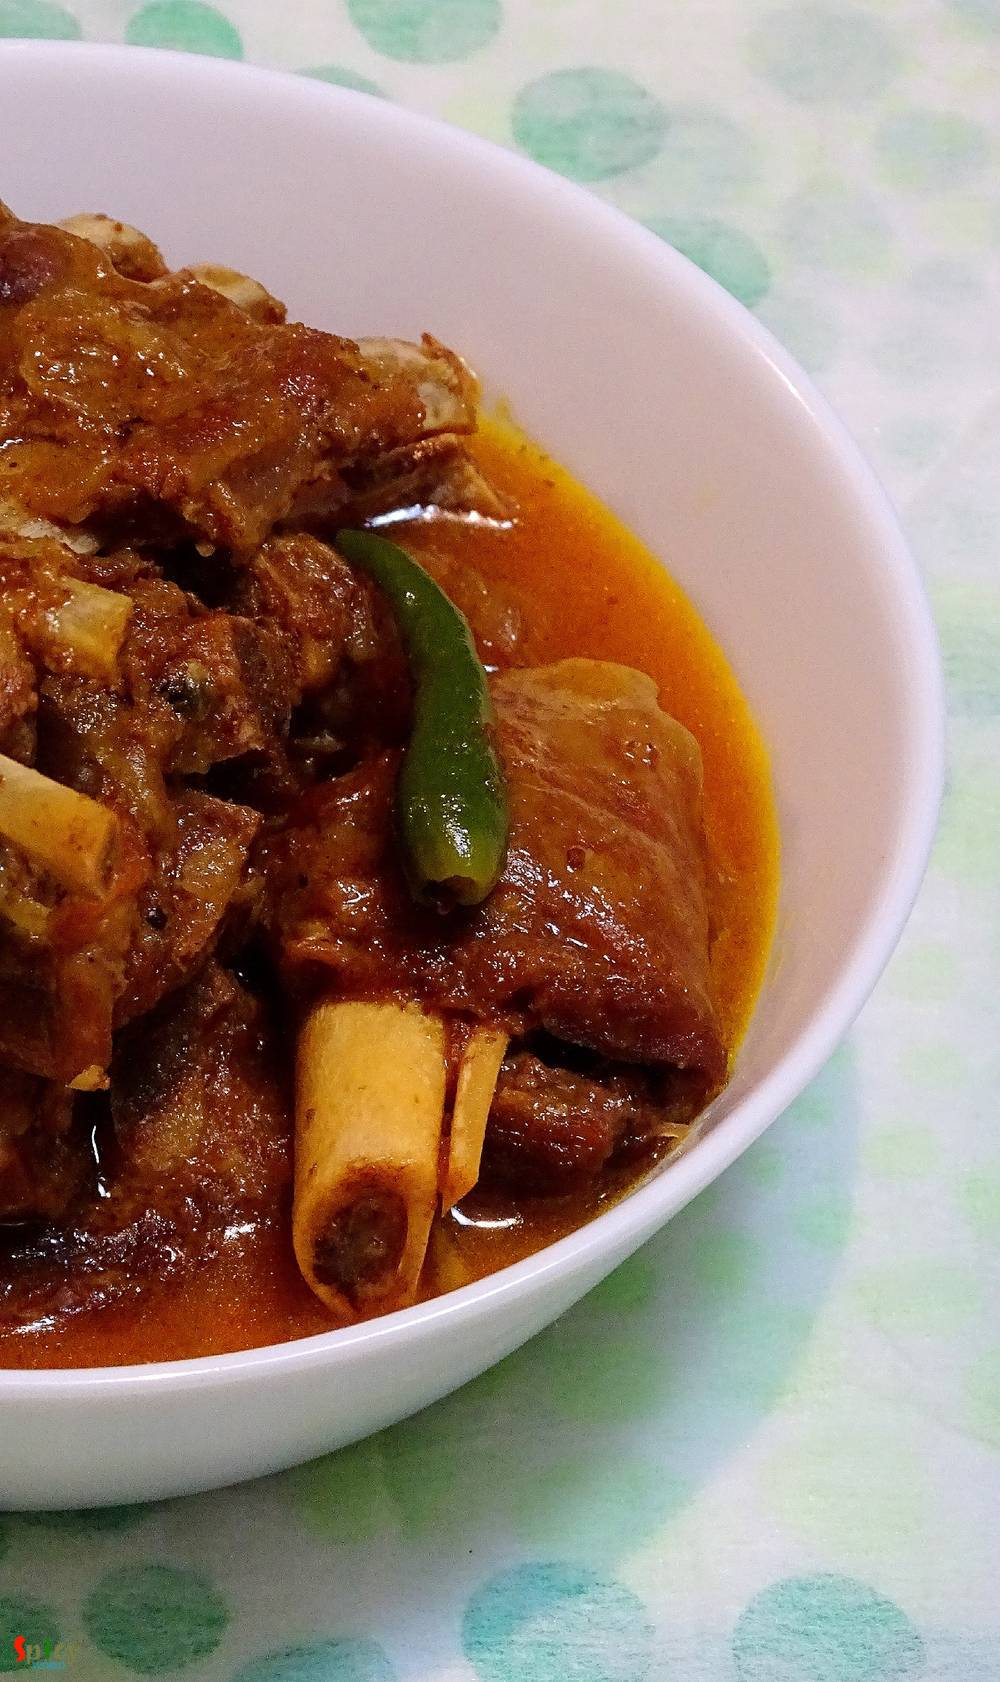 Adabata aar kacha-lonkar Mutton / Mutton curry with ginger and green chilies